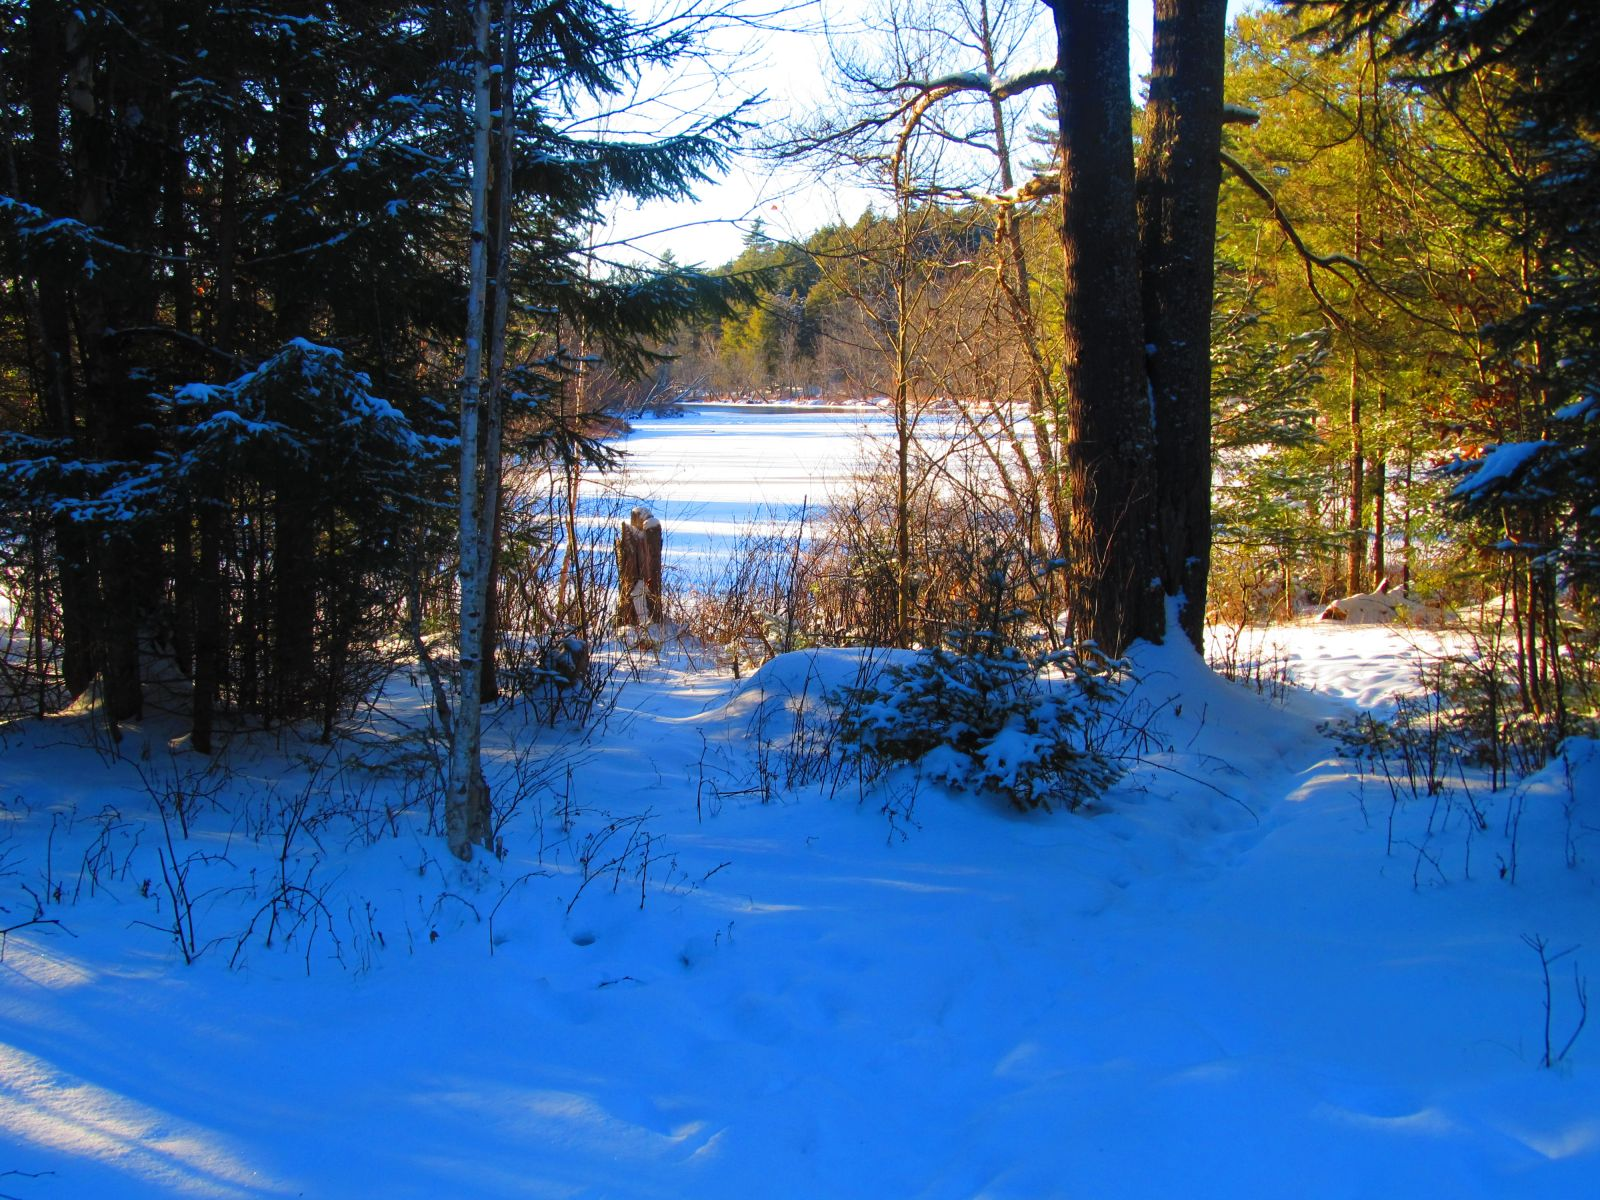 View the Raquette River by skiing into Trombley's Clearing